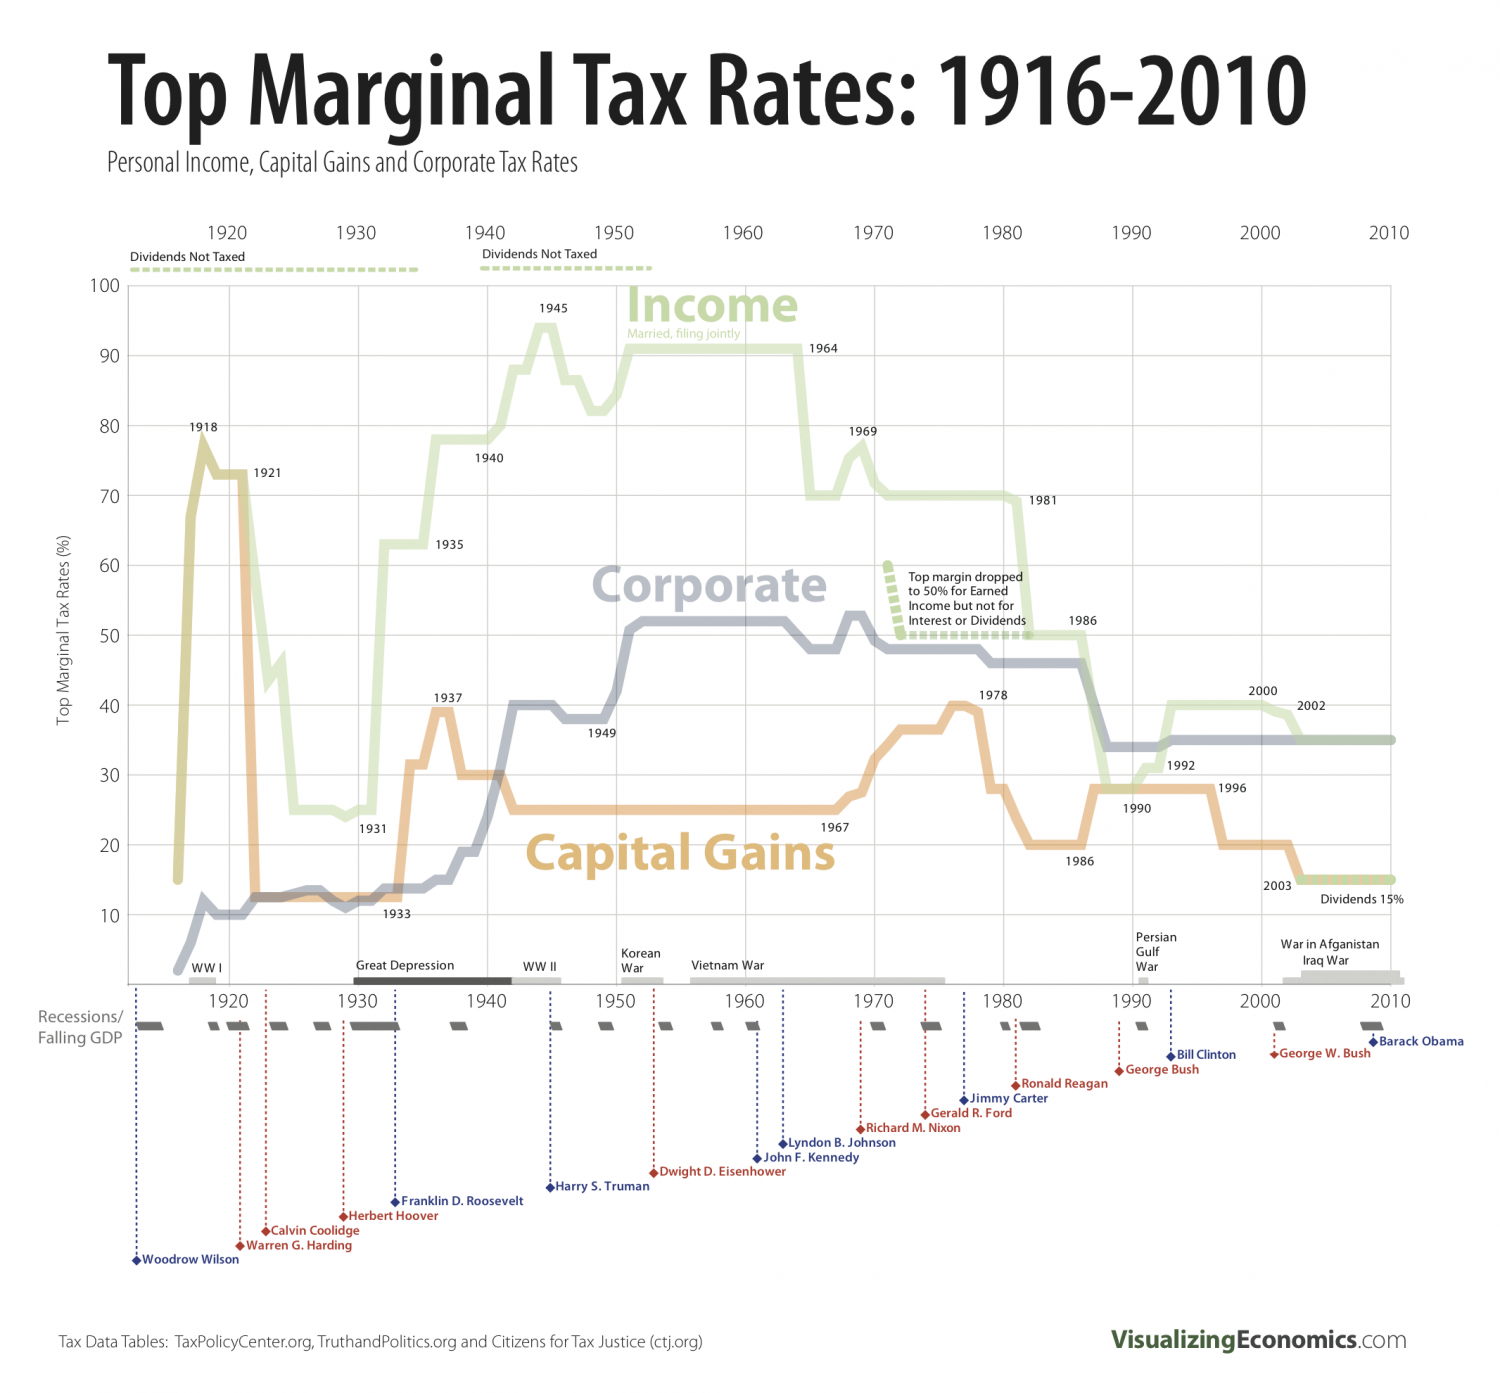 Top Marginal Tax Rates 1916-2010 Infographic